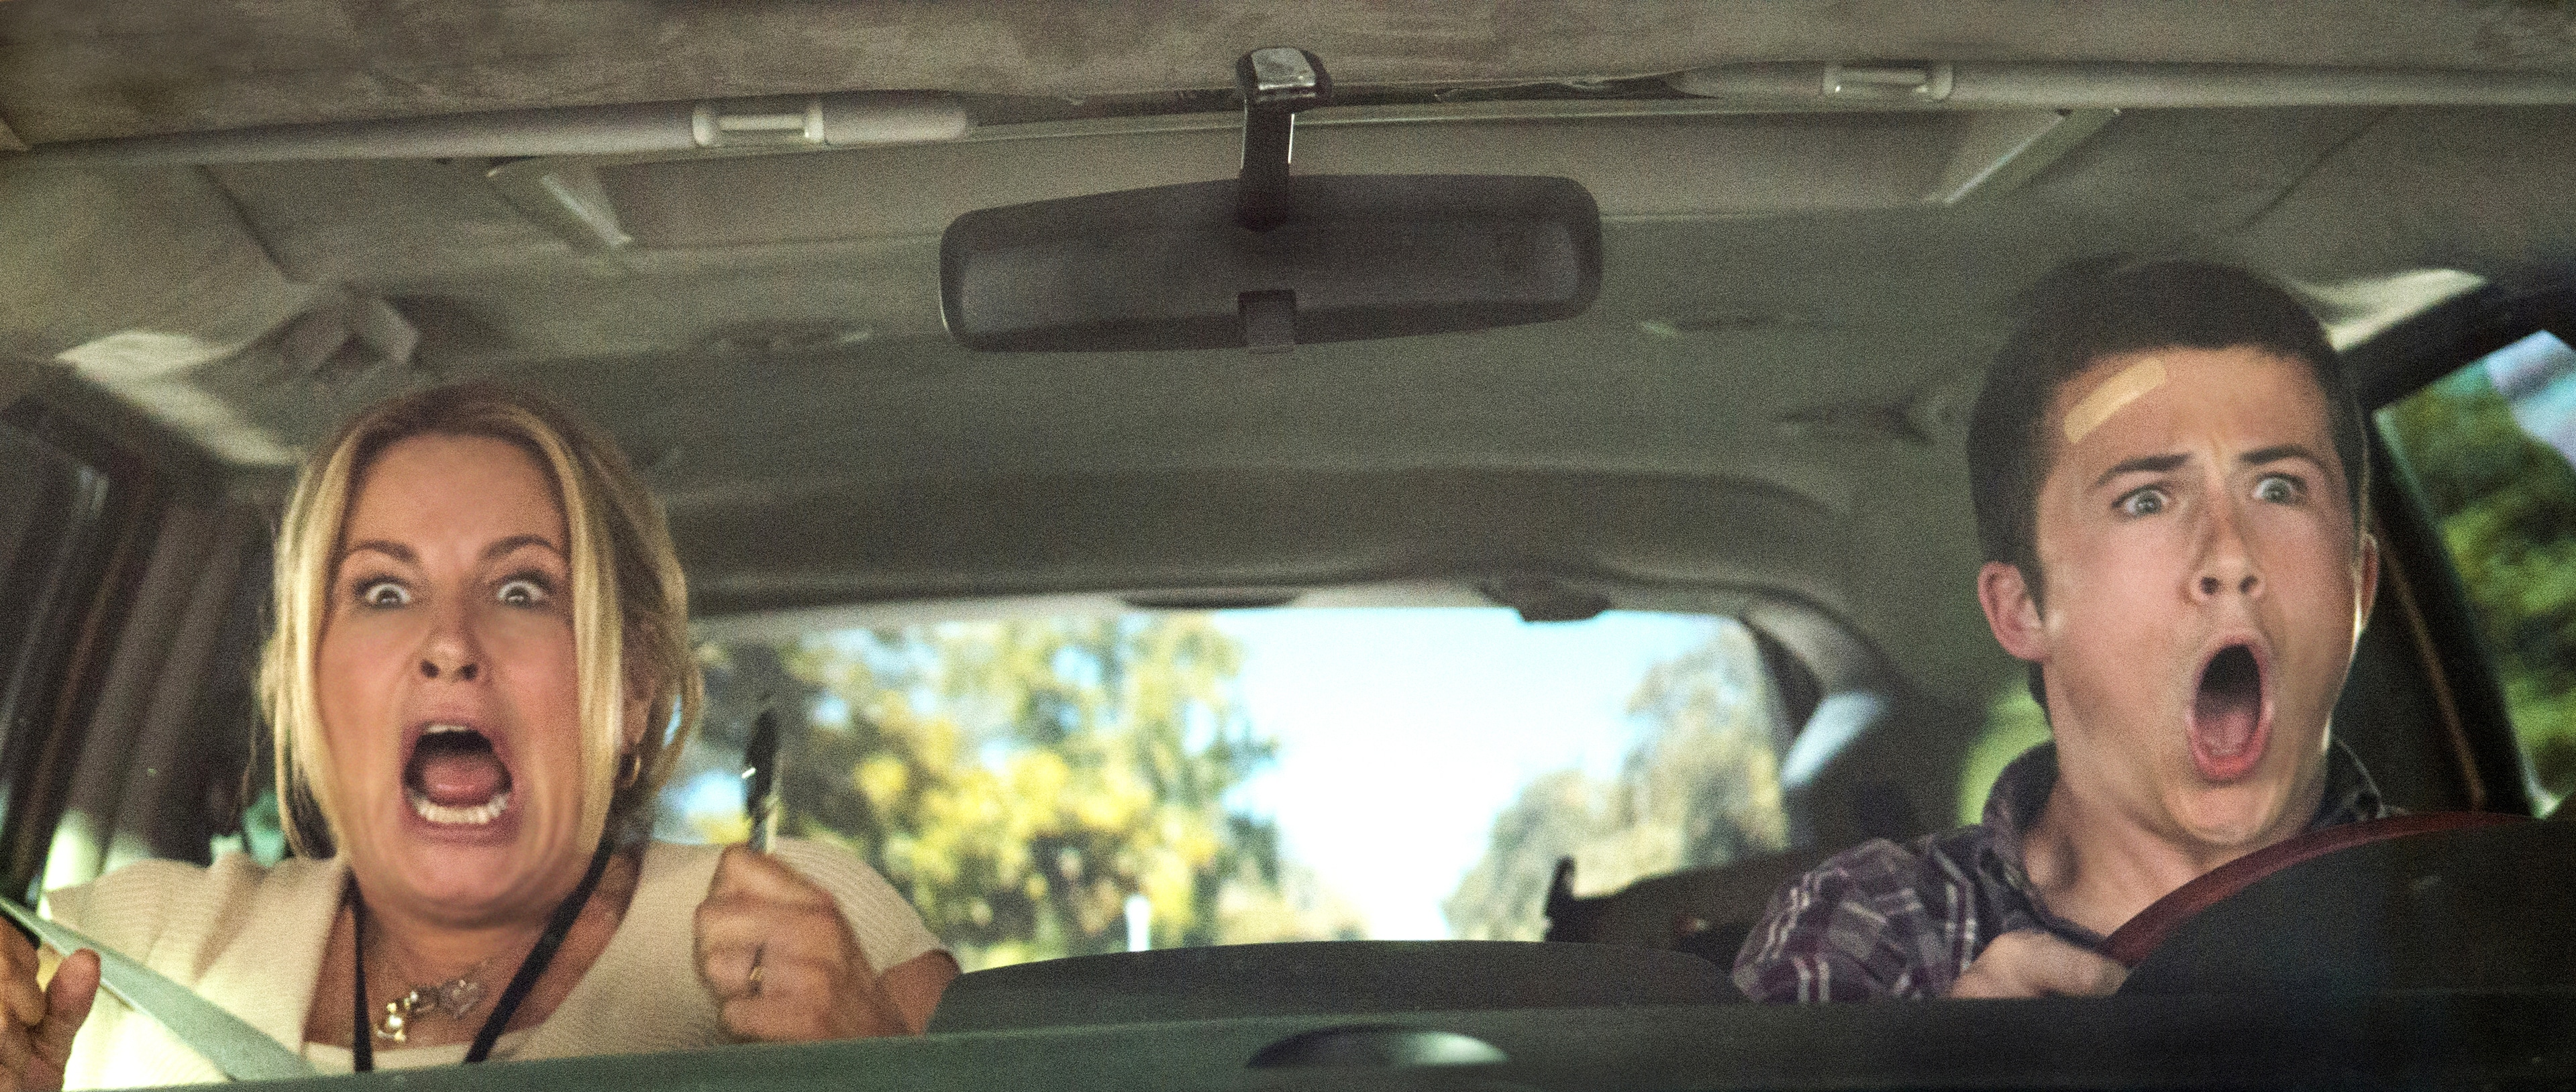 Kelly and Ben Cooper driving in a car